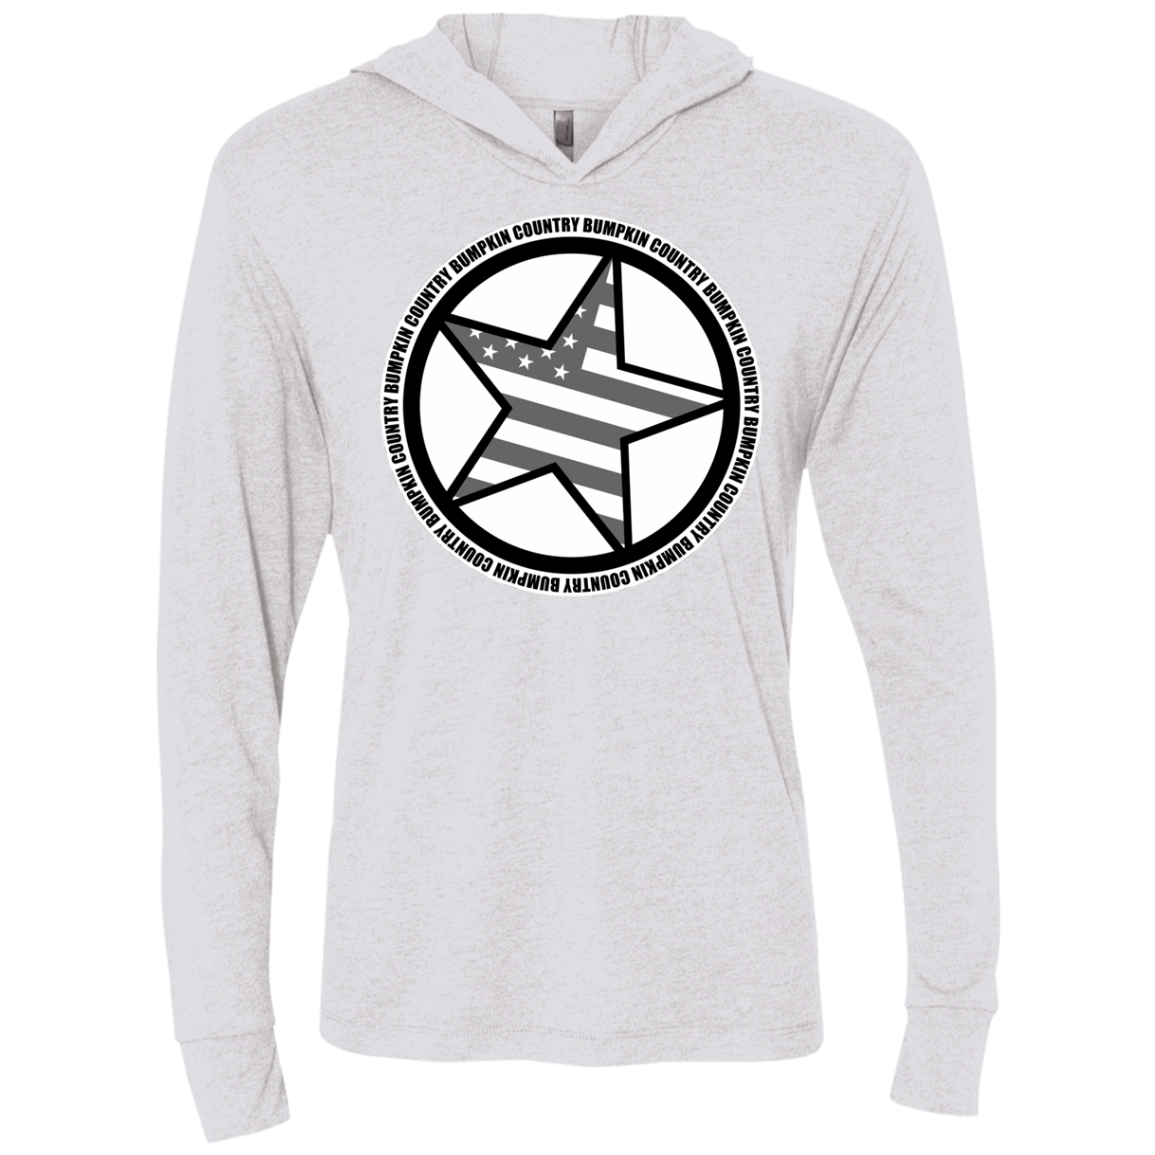 """Country Bumpkin"" Diagonal Star with Flag NL6021 Unisex Triblend LS Hooded T-Shirt"